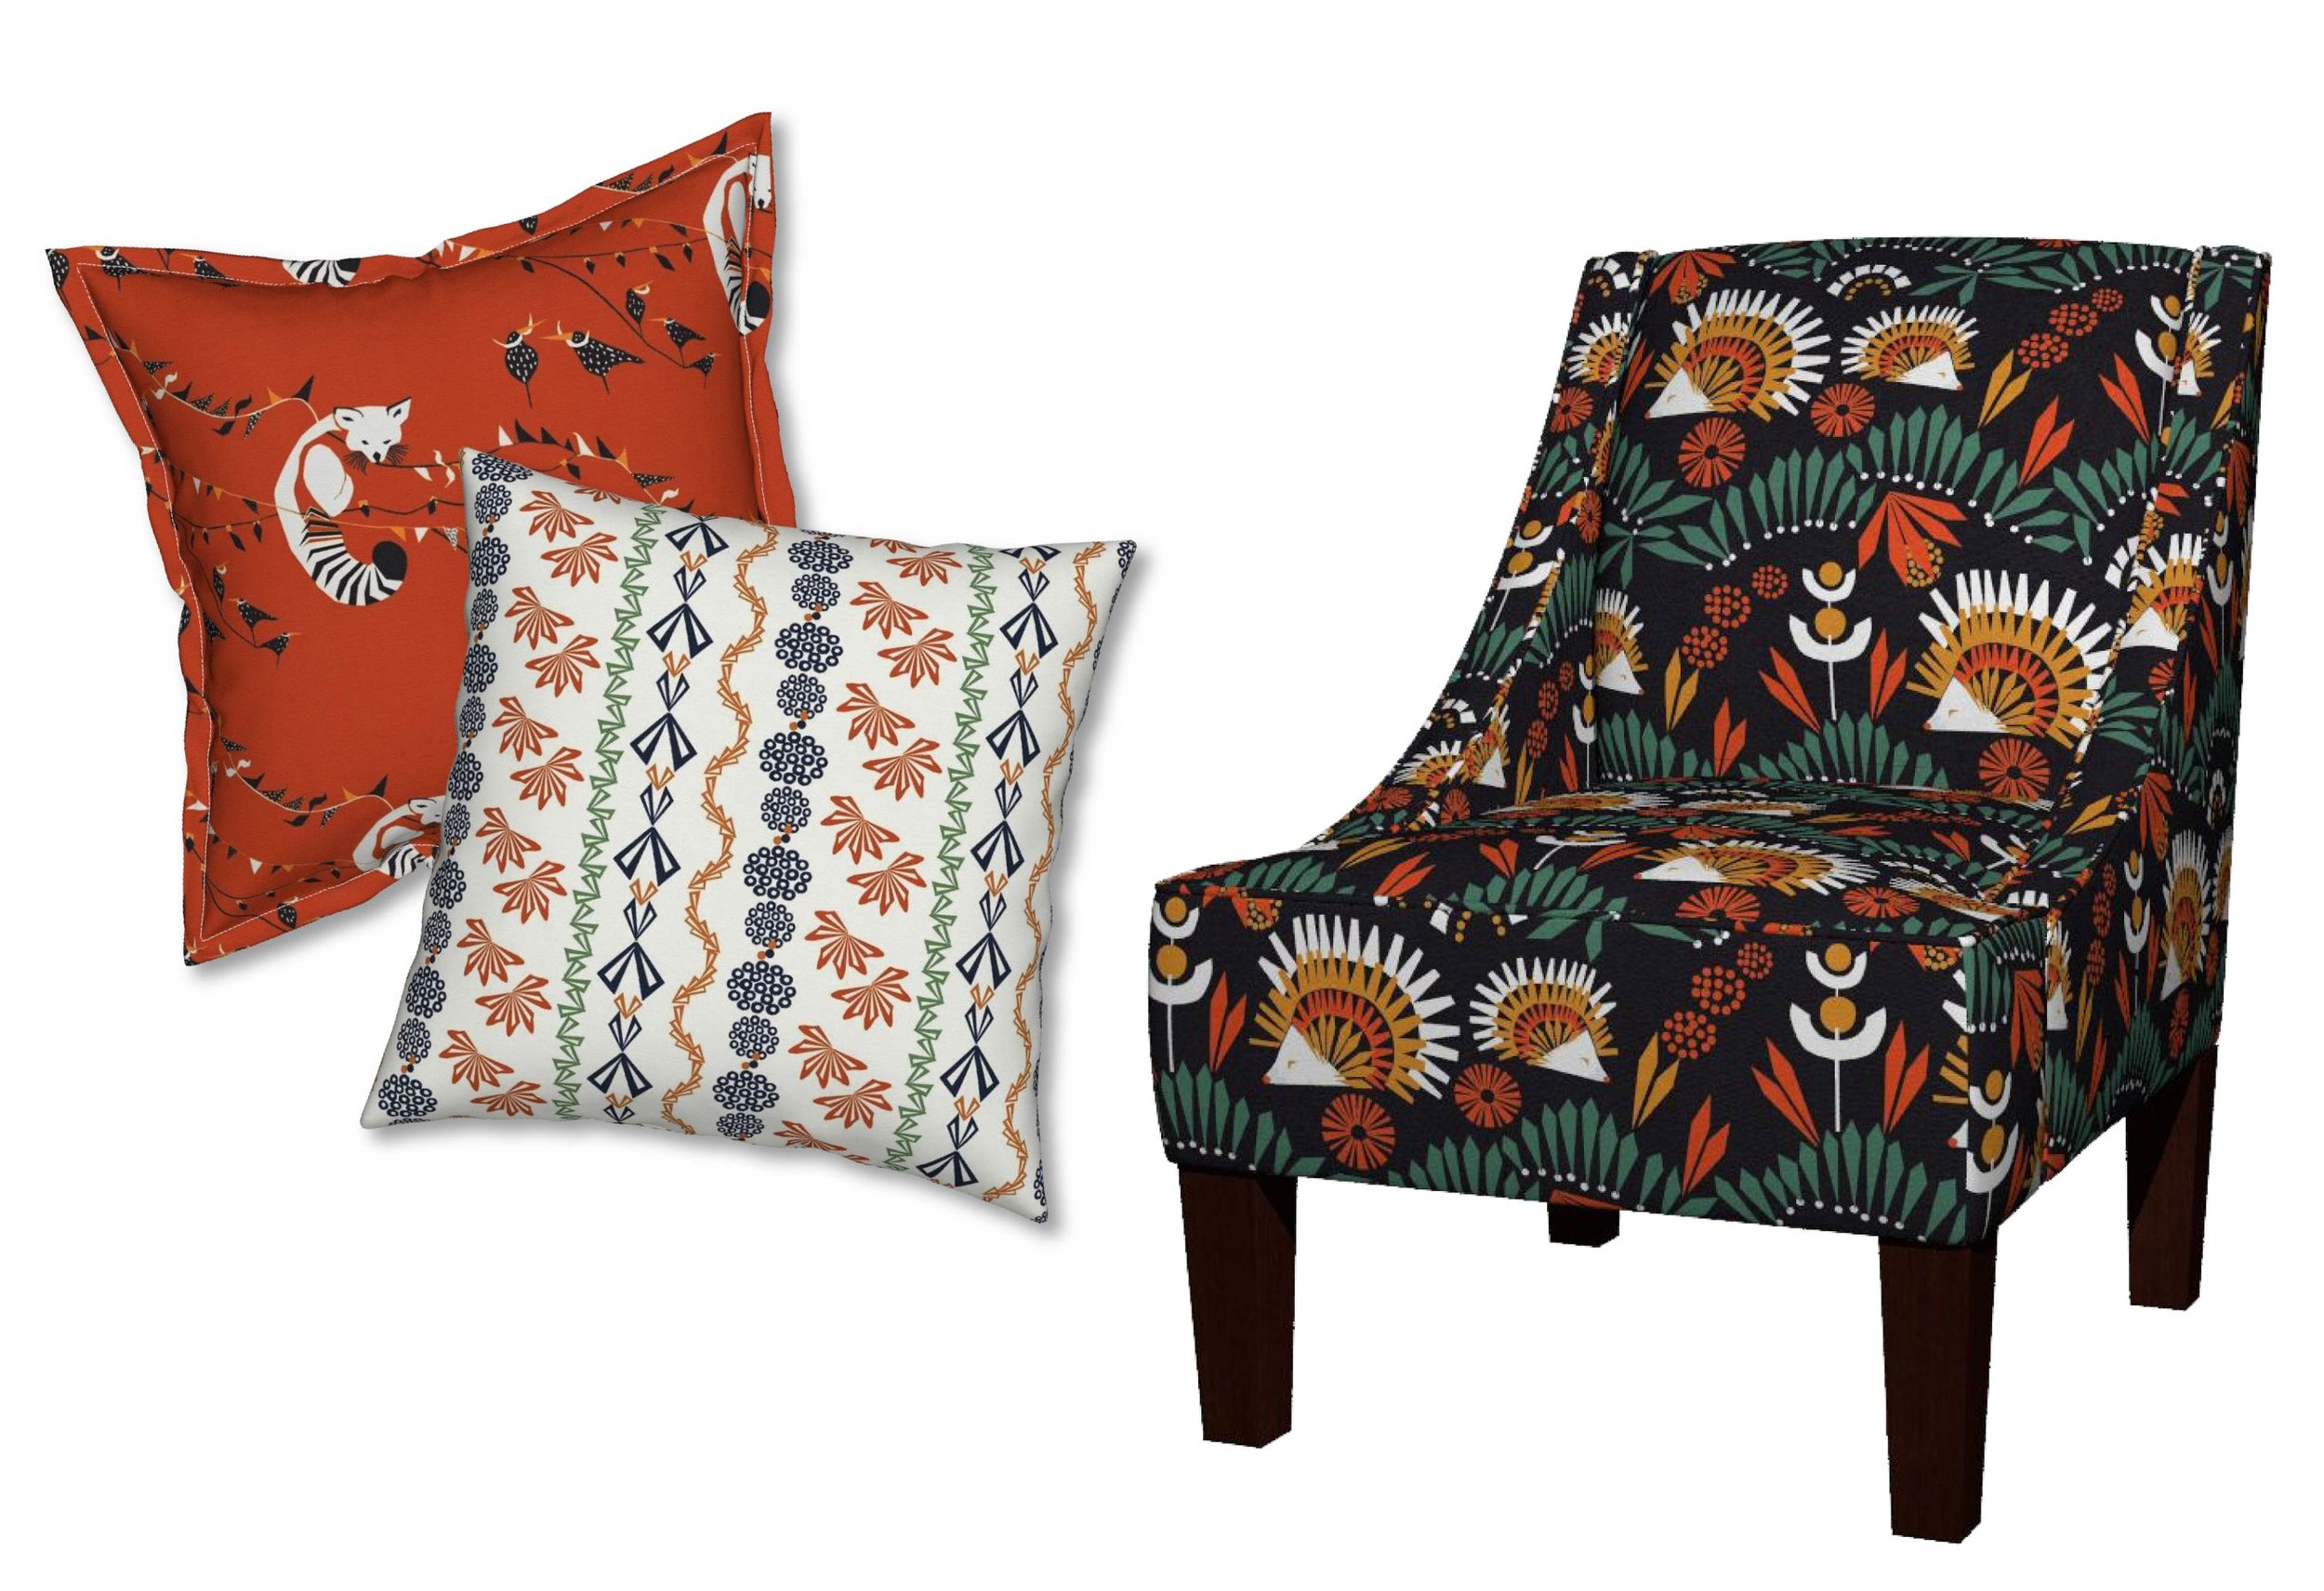 Whiskers(!) and Moustaches Serama Pillow ;  Berries and Flowers Catalan Pillow ;  We Mostly Come Out at Night Venda Chair  by  Mirjamauna